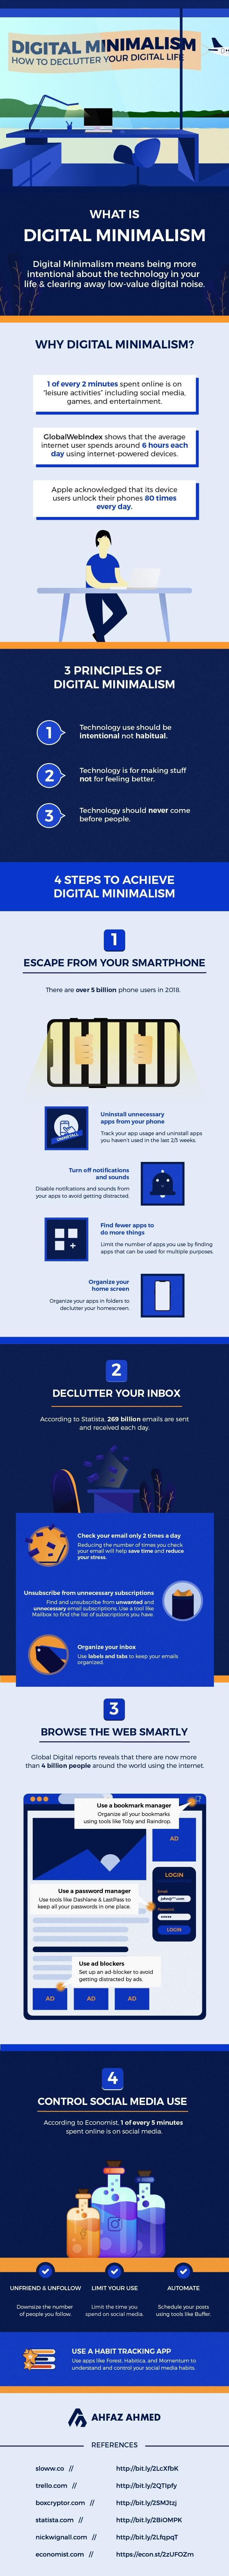 How To Declutter Your Digital Life #infographic